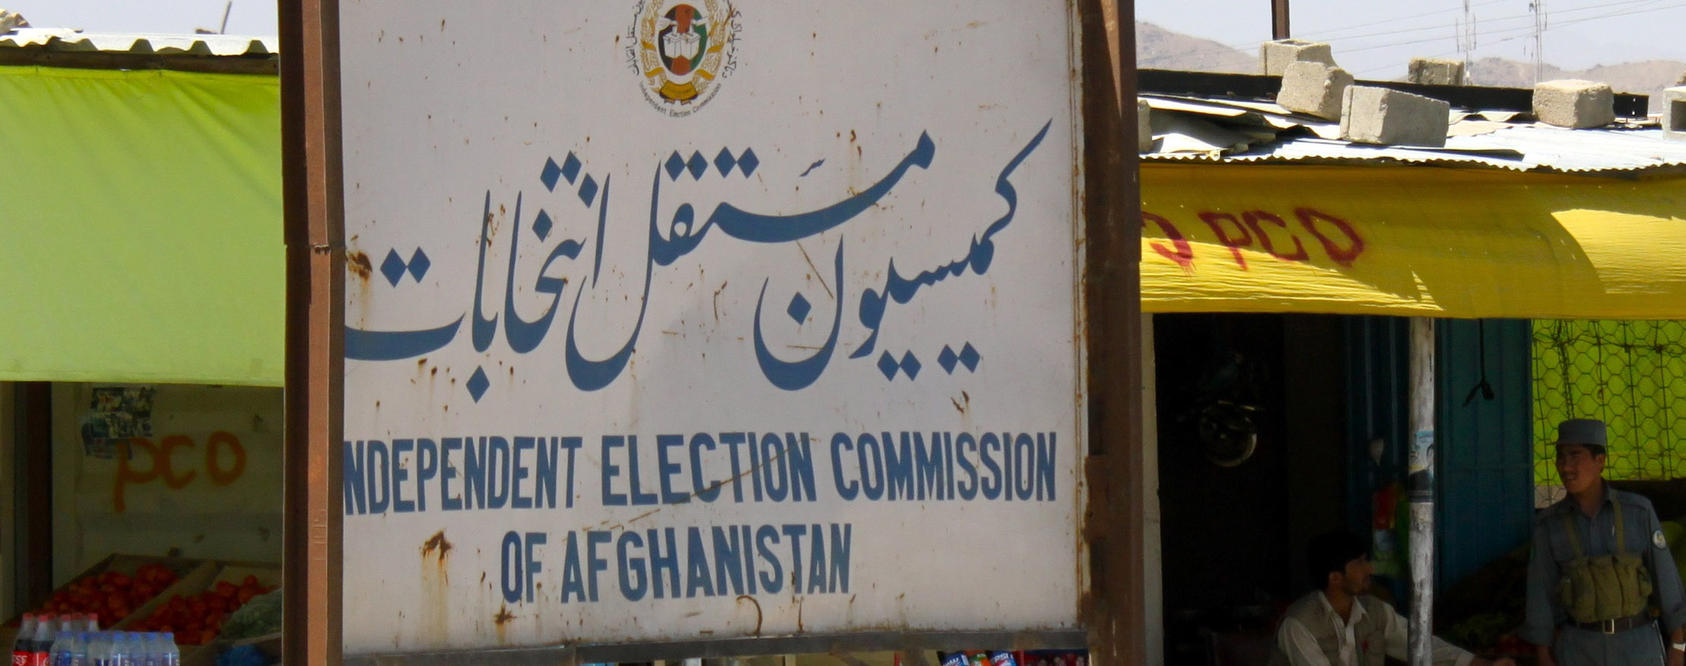 election commission sign